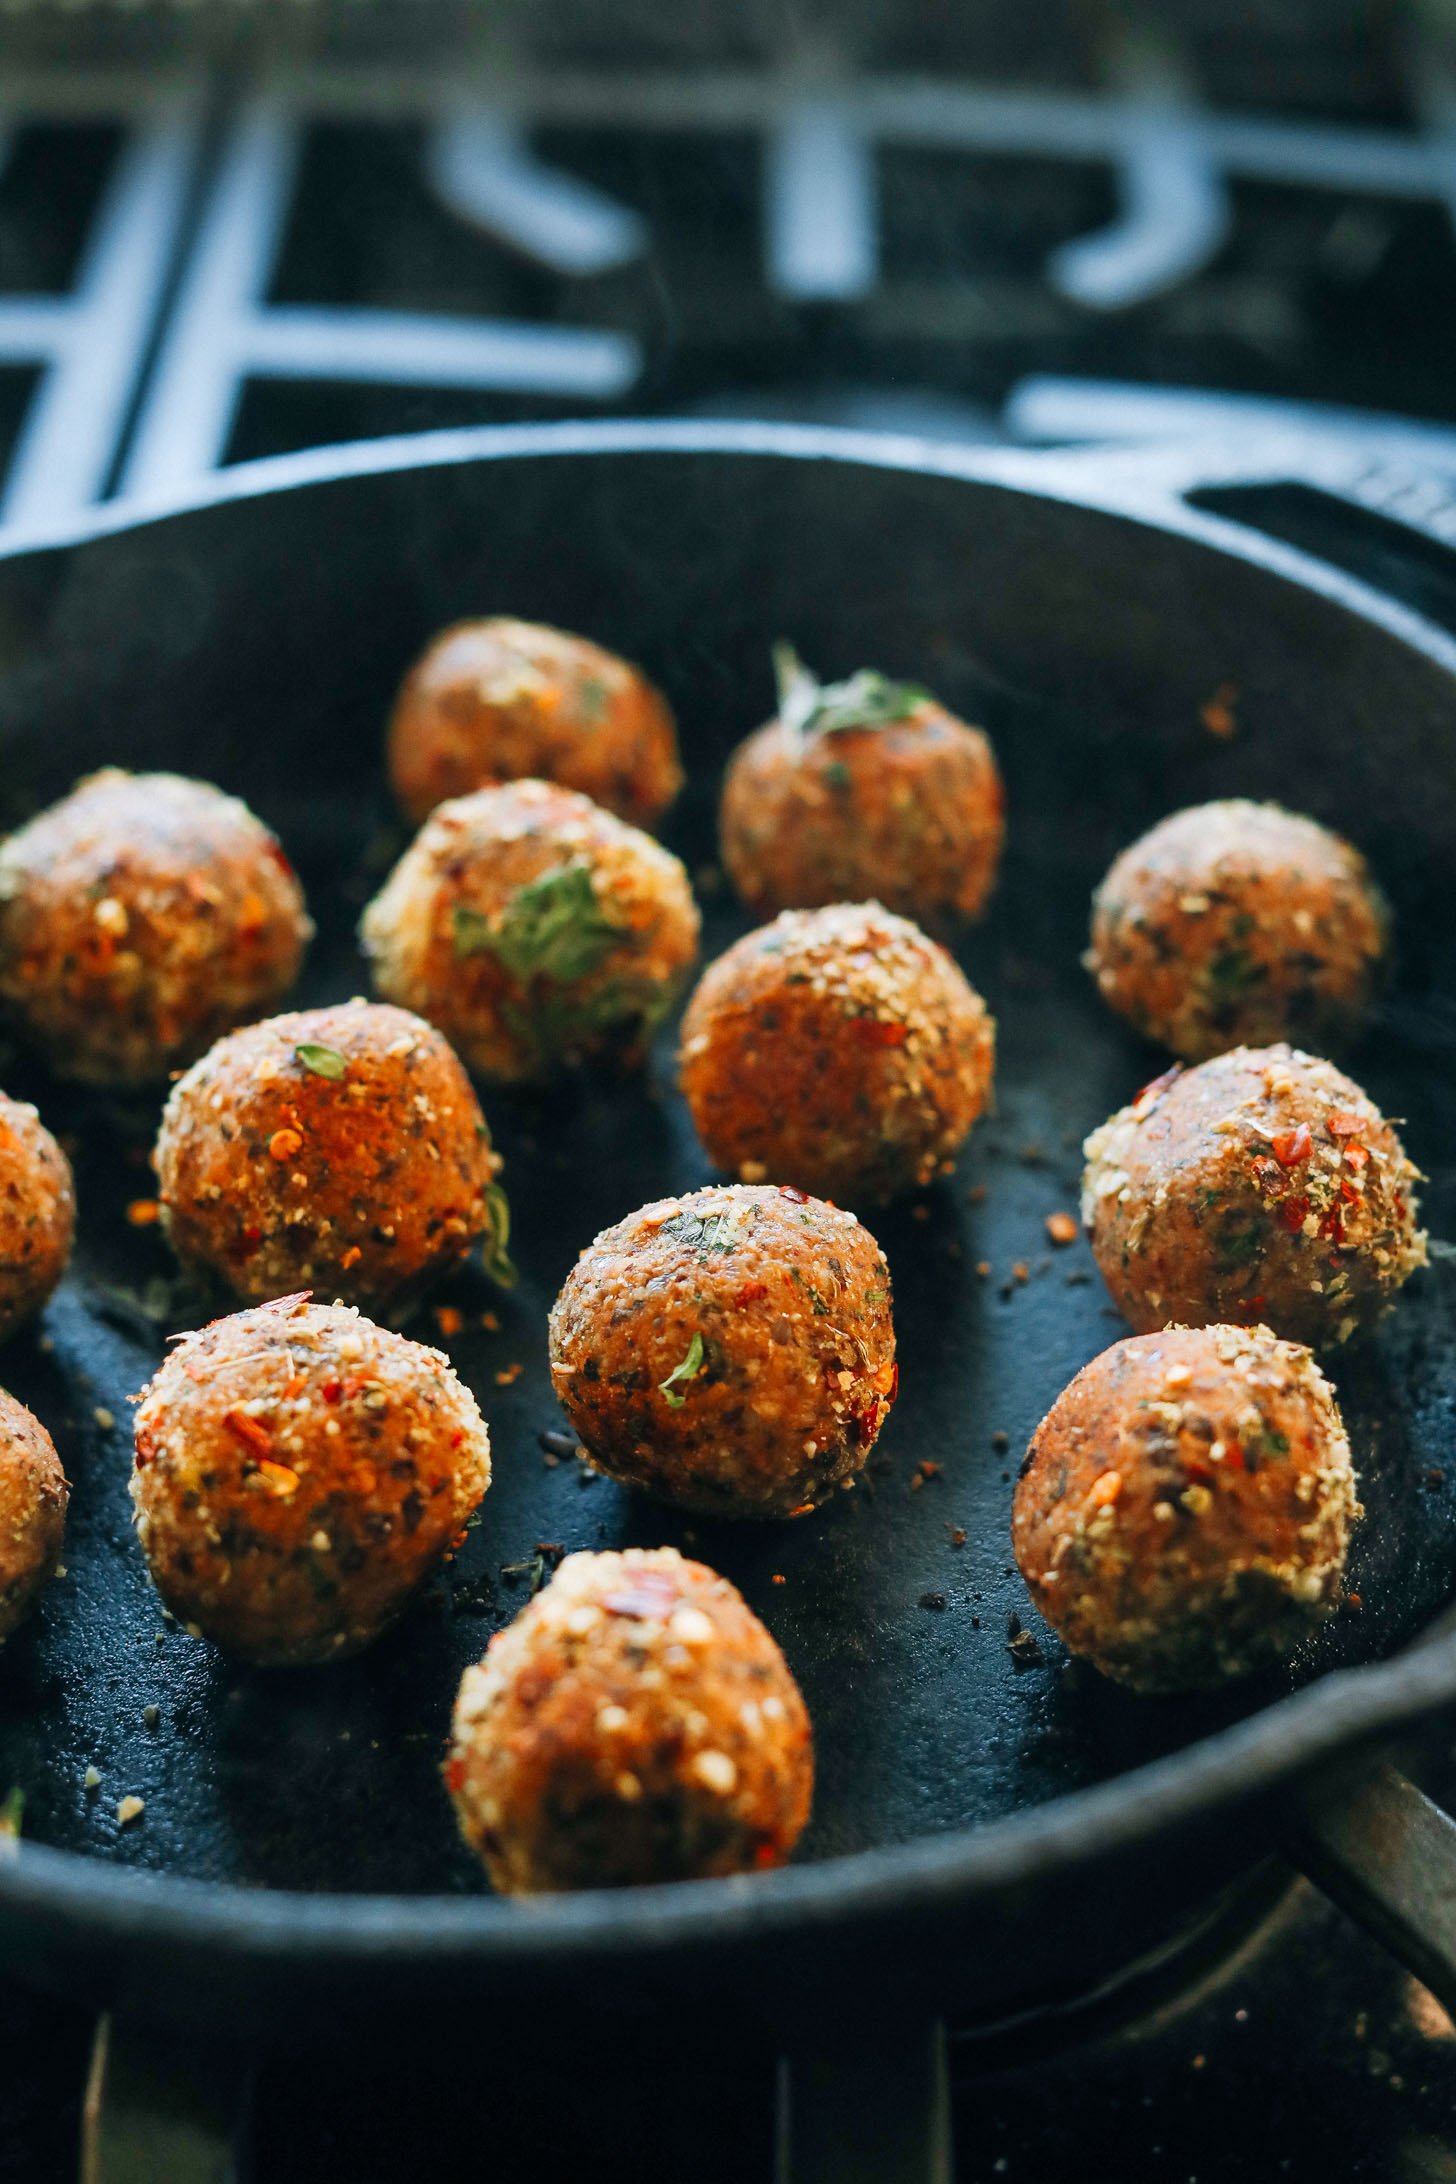 Browning vegan meatballs in a cast-iron skillet